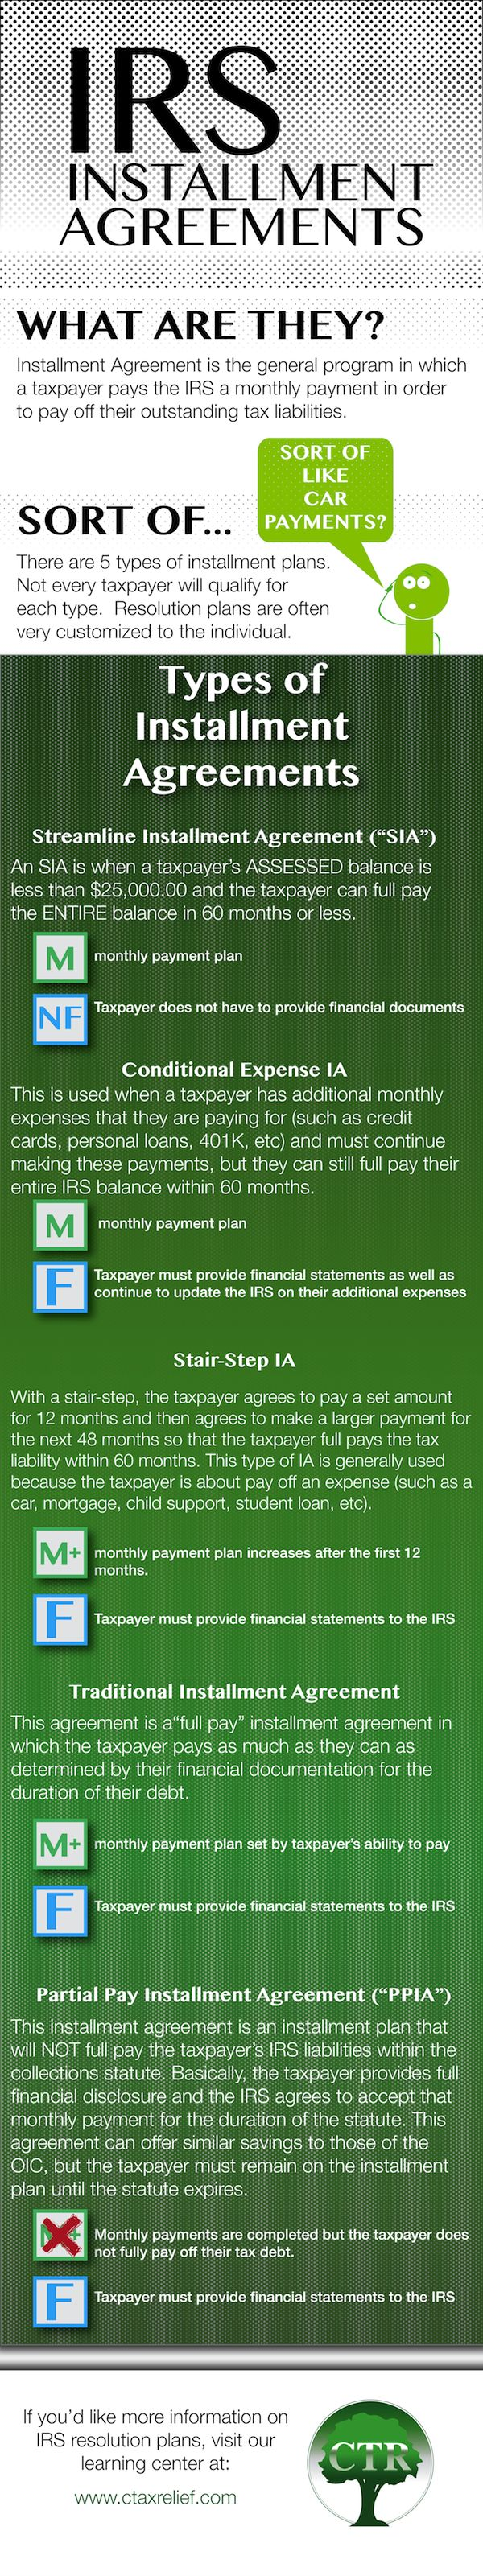 376 best tax preparation images on pinterest tax preparation irs installment agreements infographic falaconquin